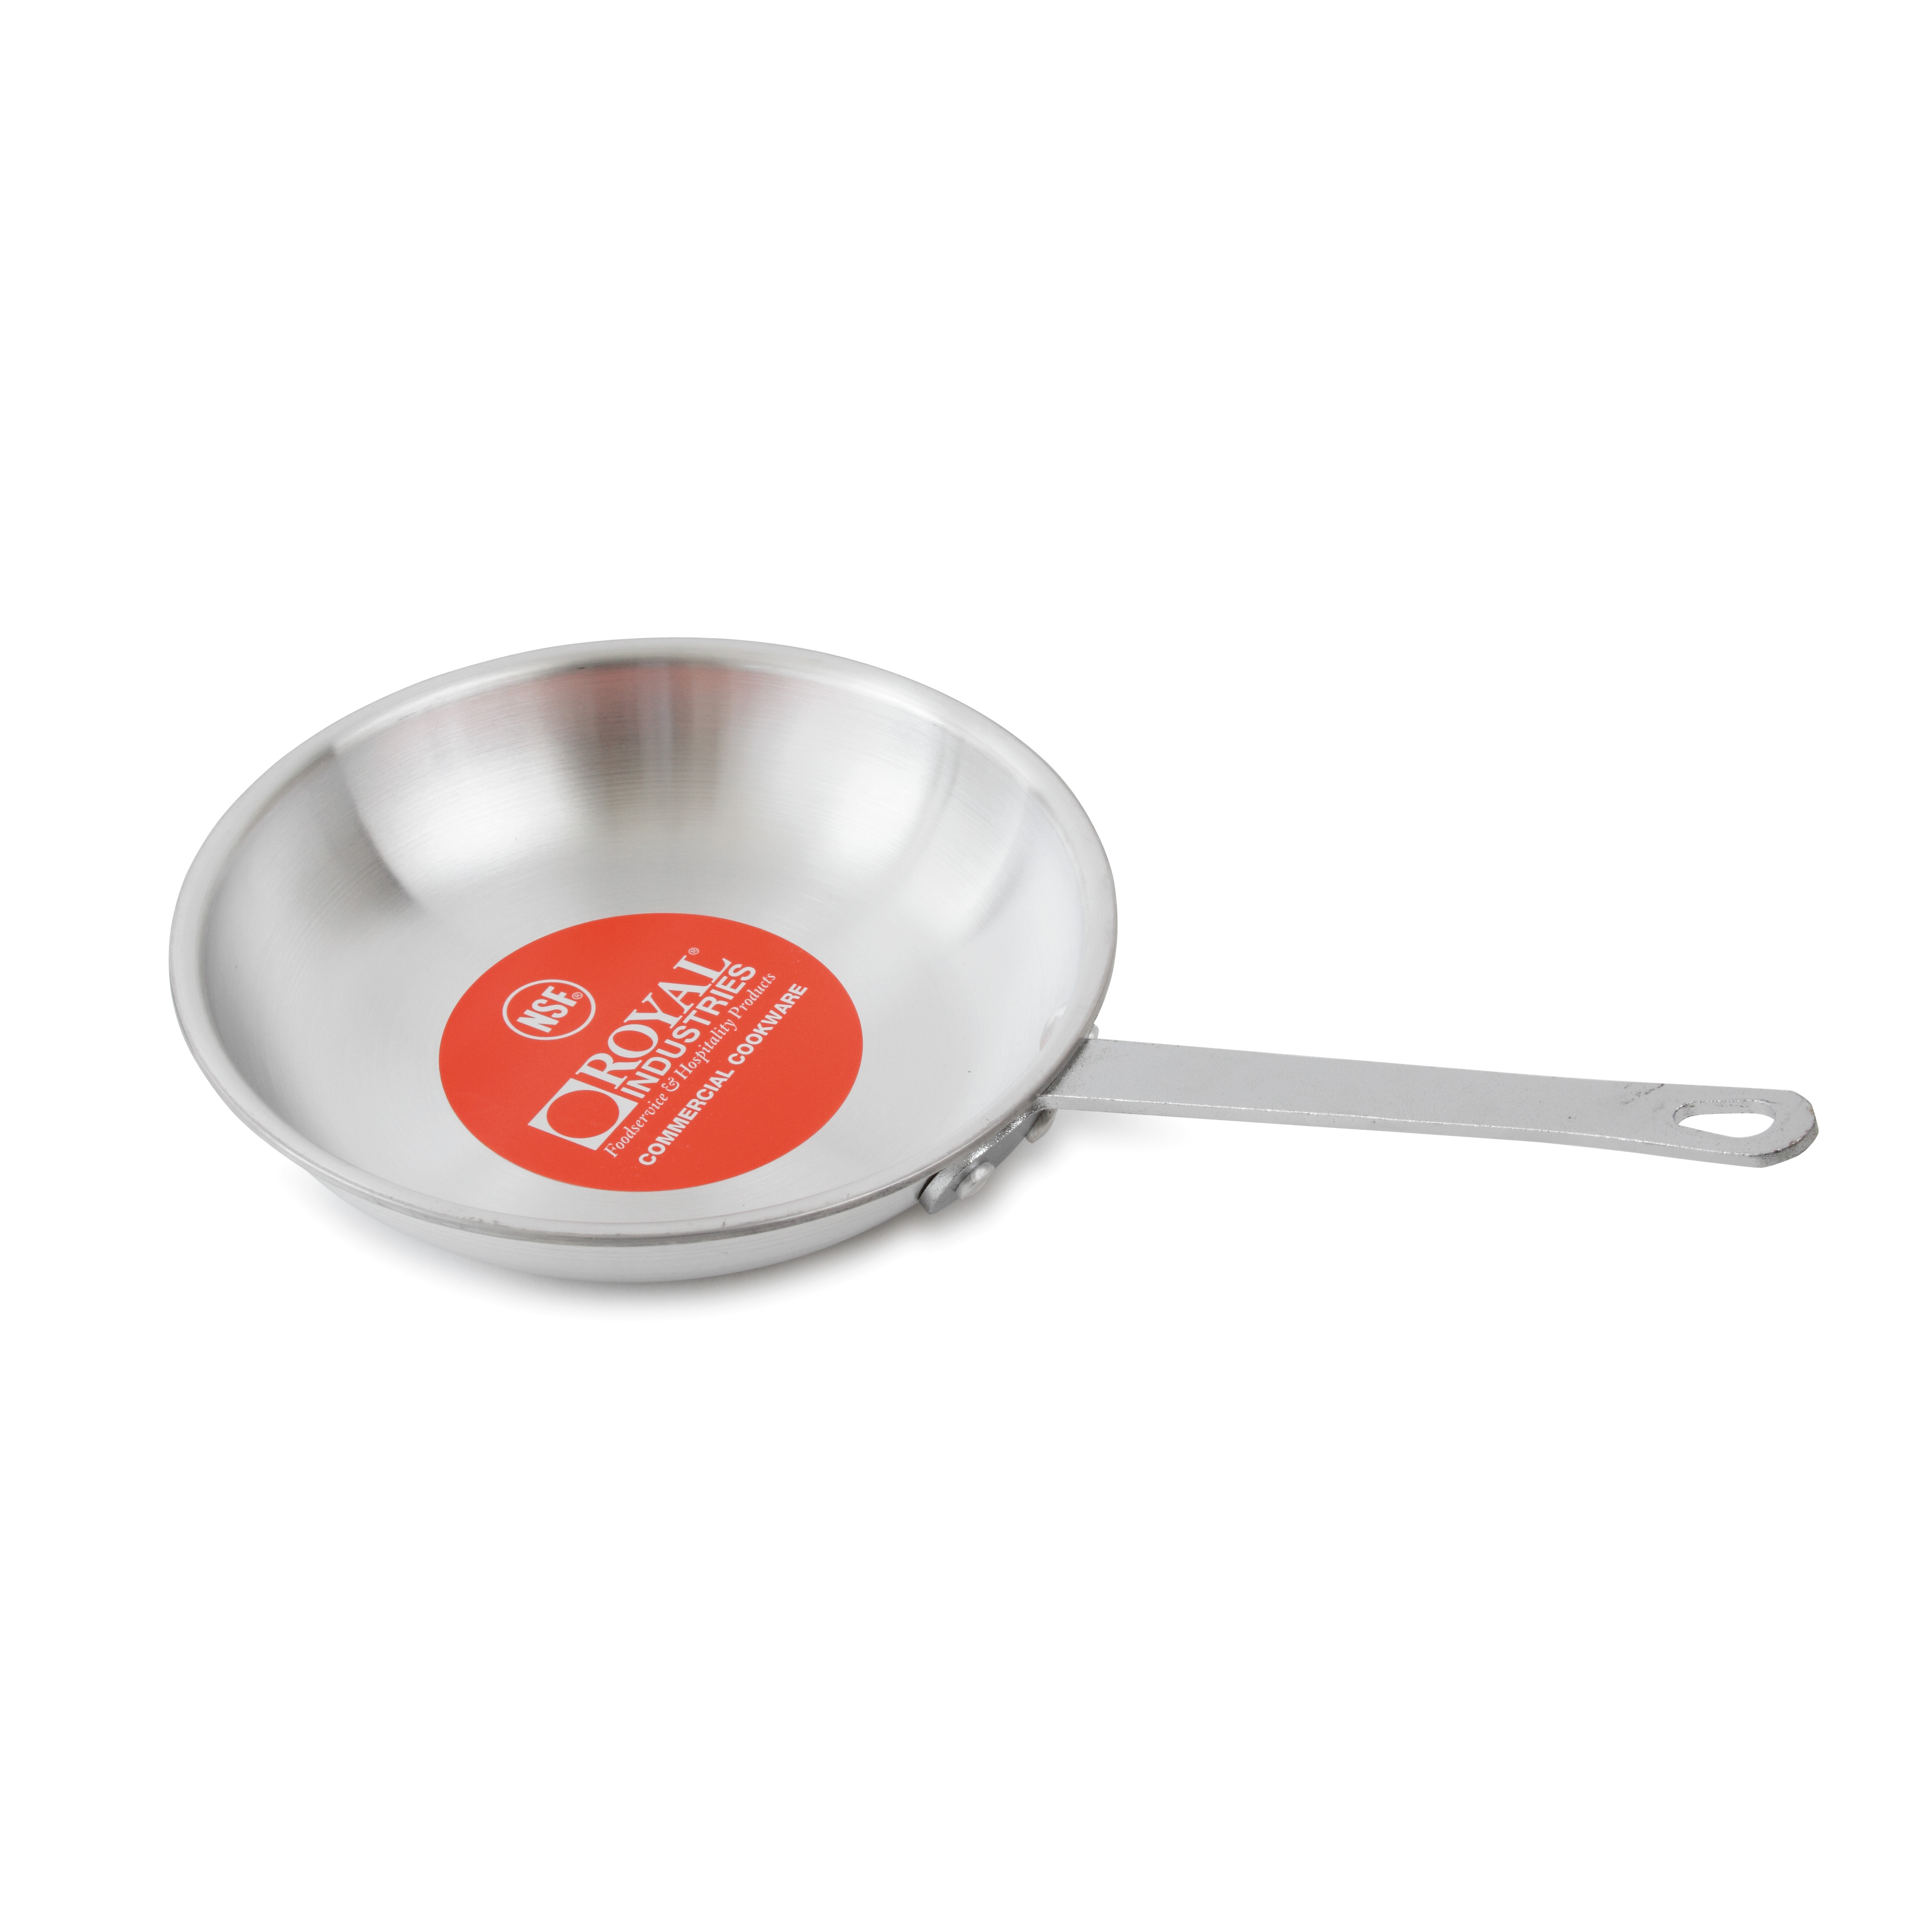 Royal Industries ROY RFP EC 10 A fry pan